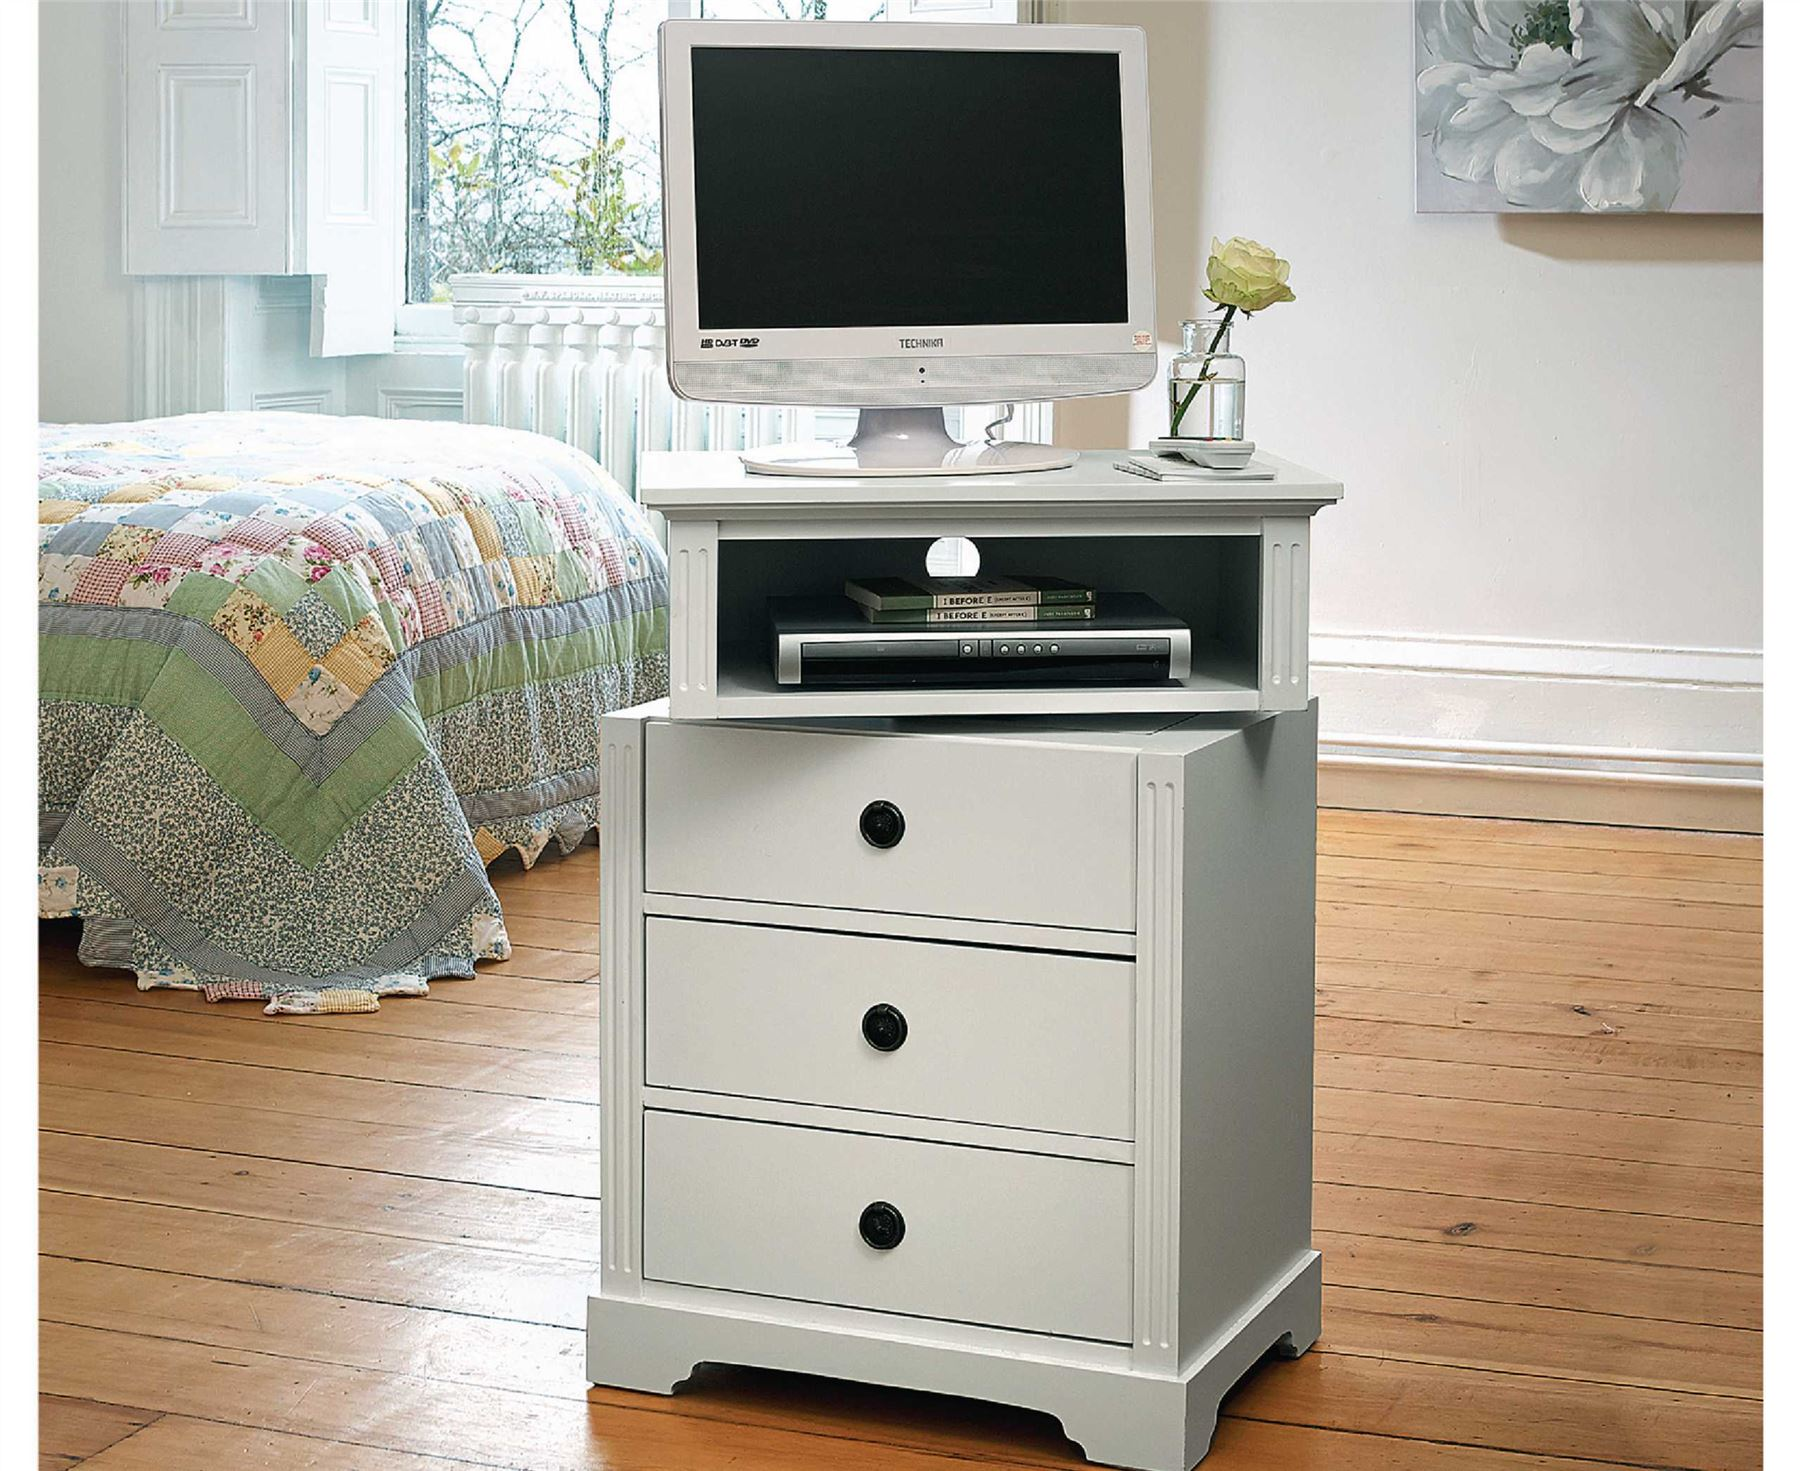 wooden chest of drawers with swivel top bedroom tv shelf rotates stand